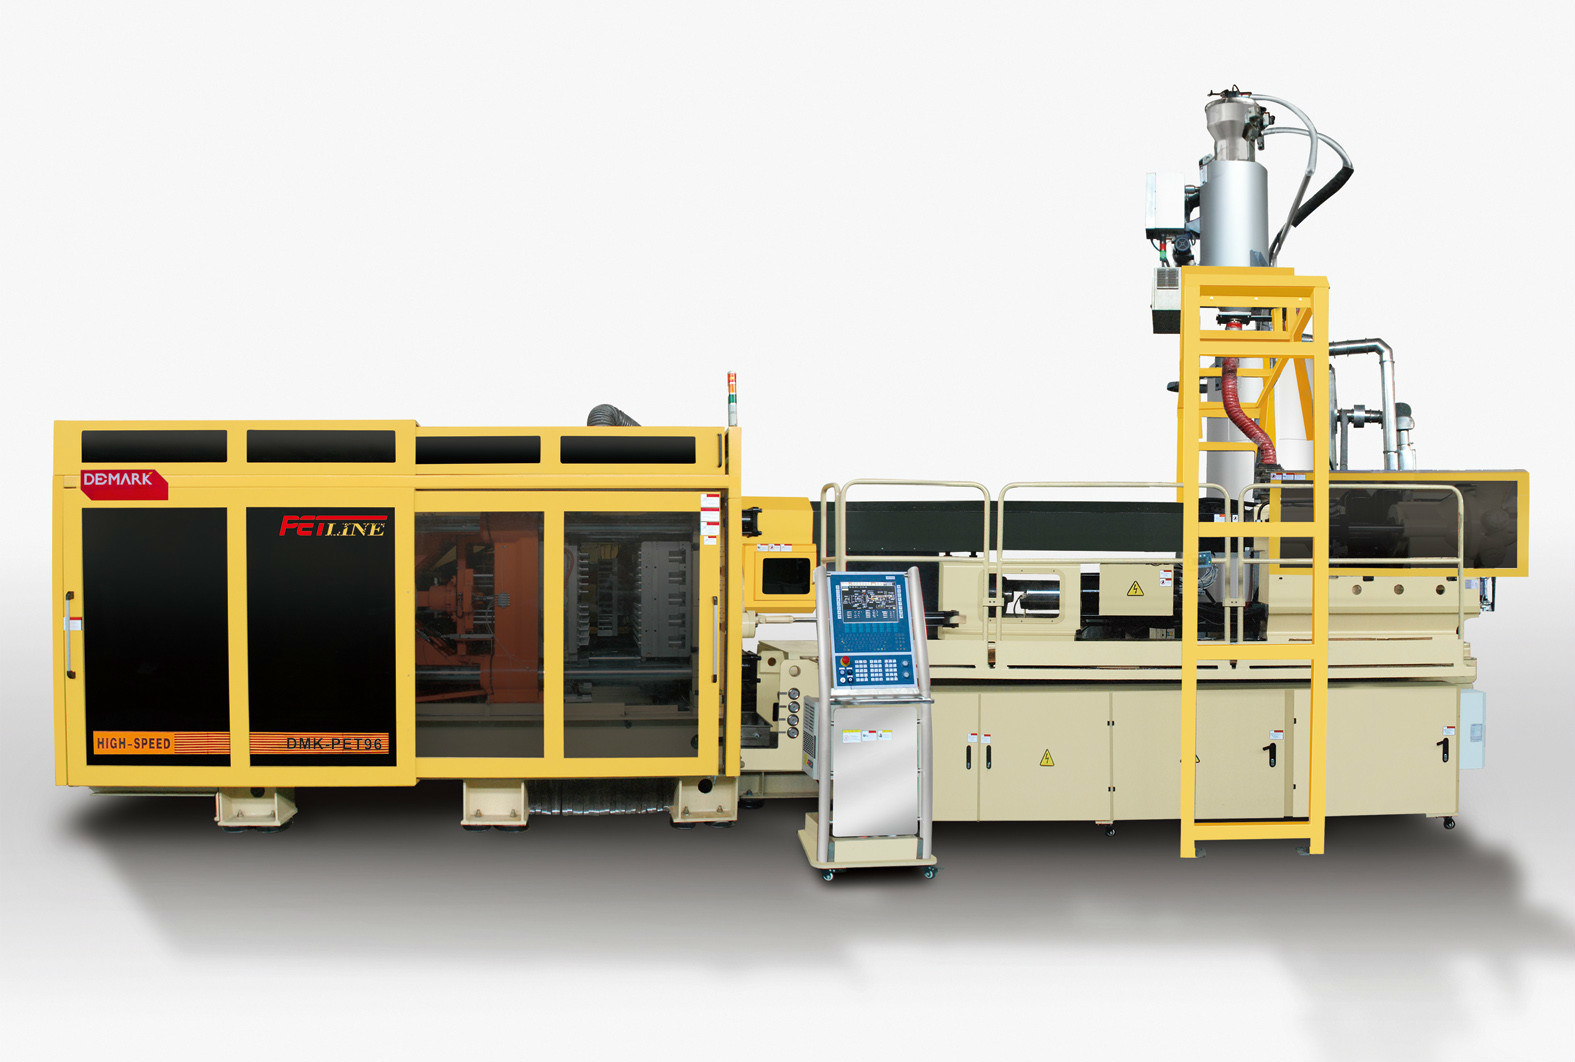 Ipet300/5000 72-Cavity High Speed Energy Saving Pet Preform Injection Molding Machine